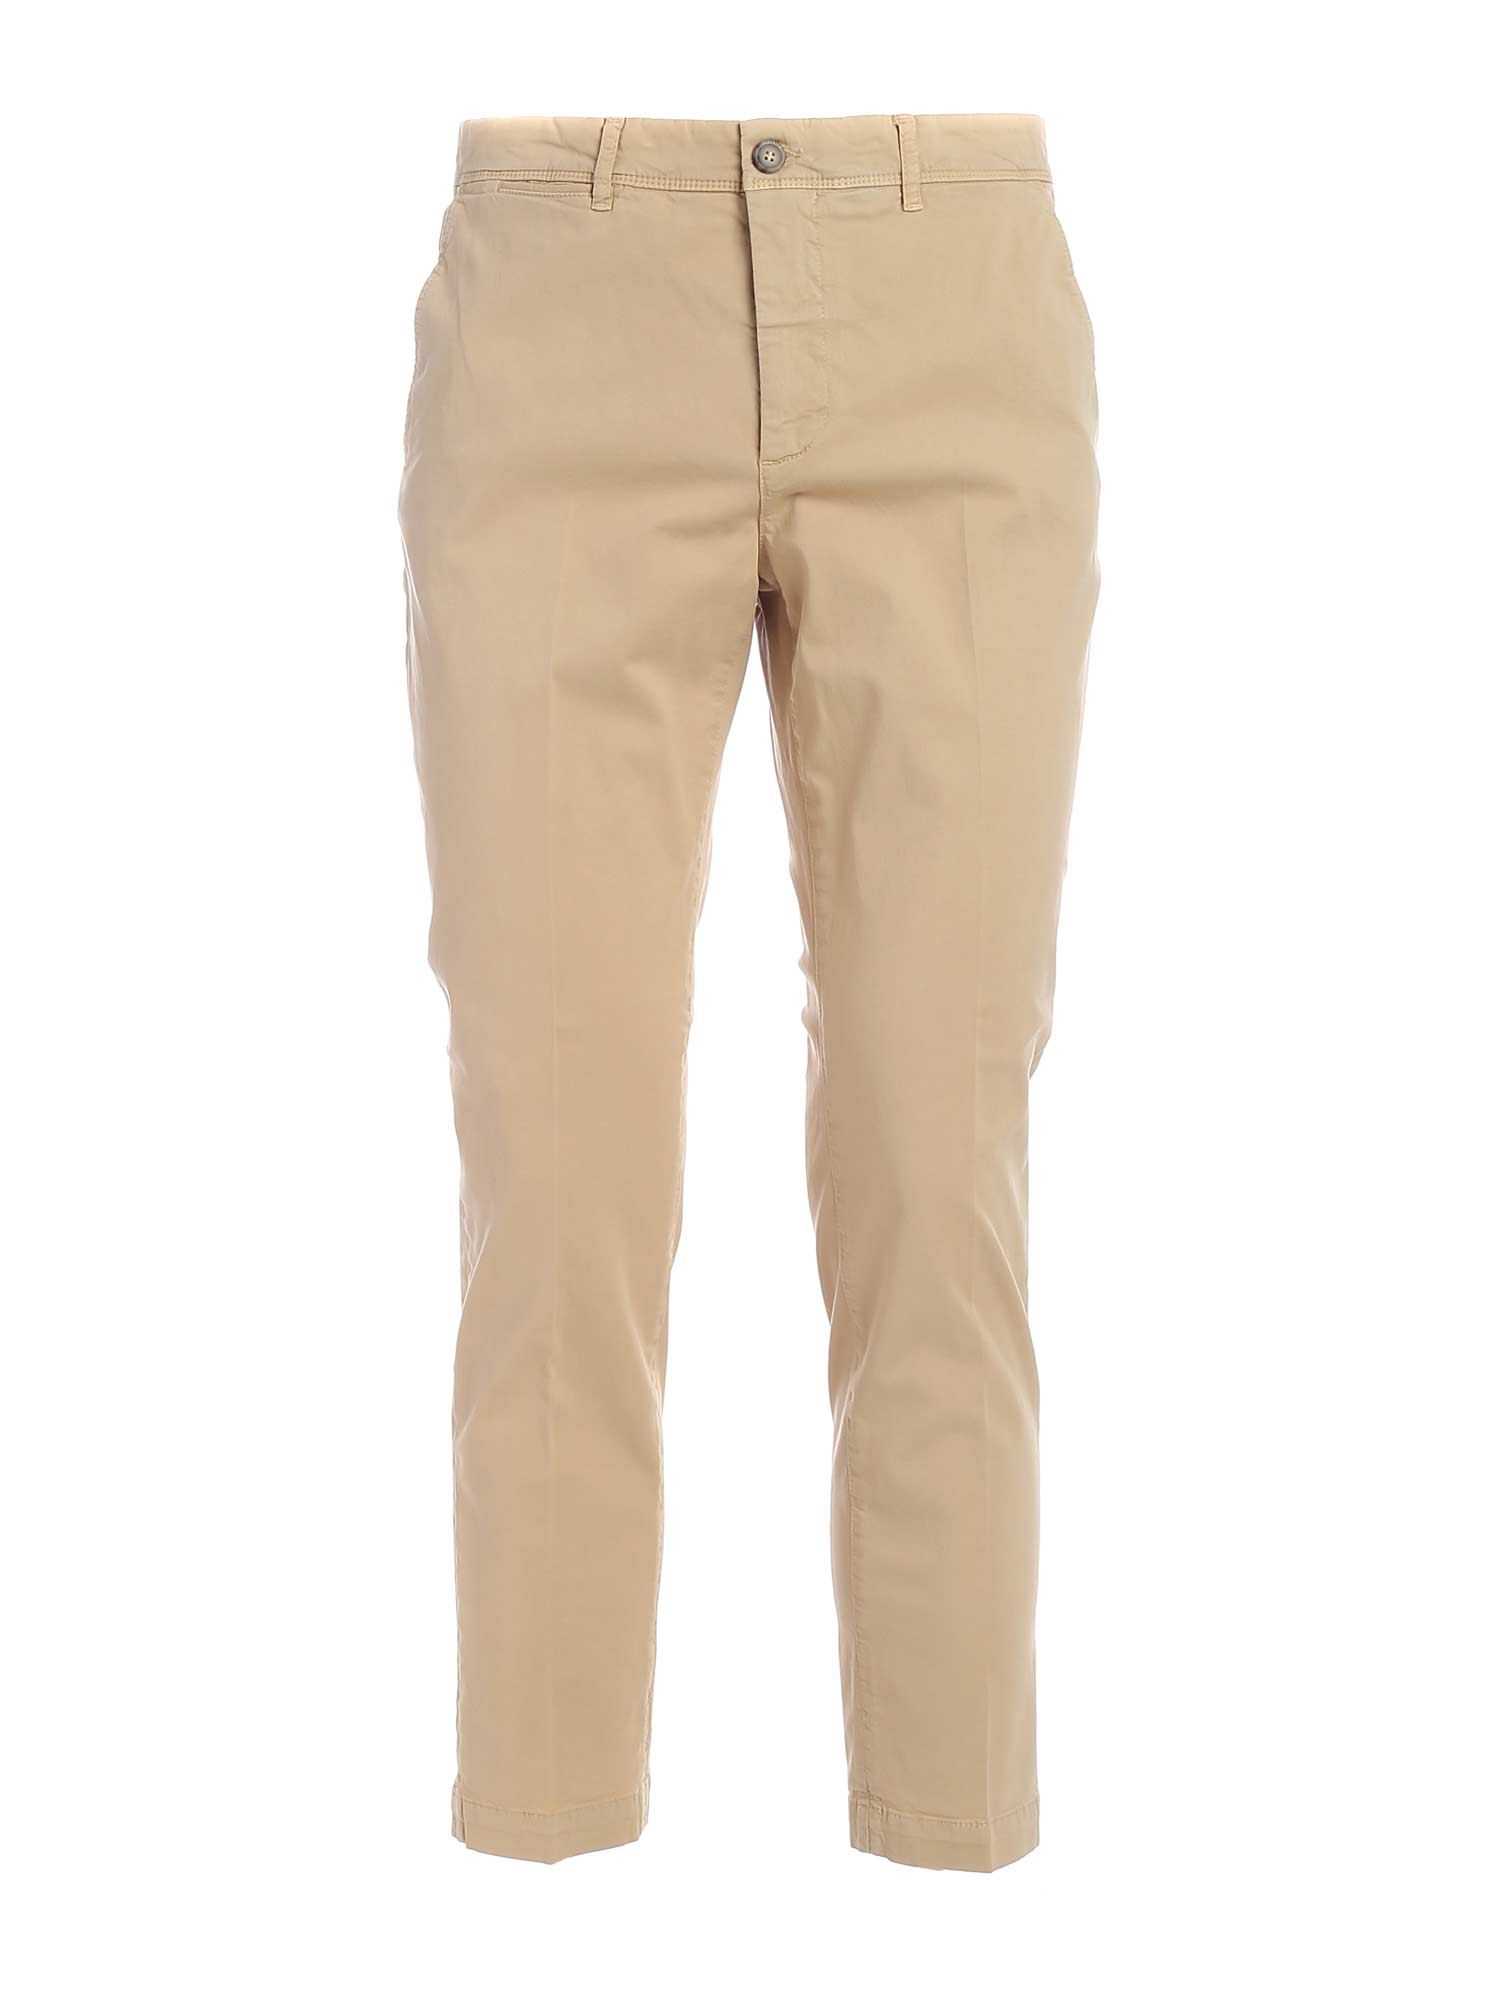 Peserico Cottons SLASH SIDE POCKETS PANTS IN BEIGE